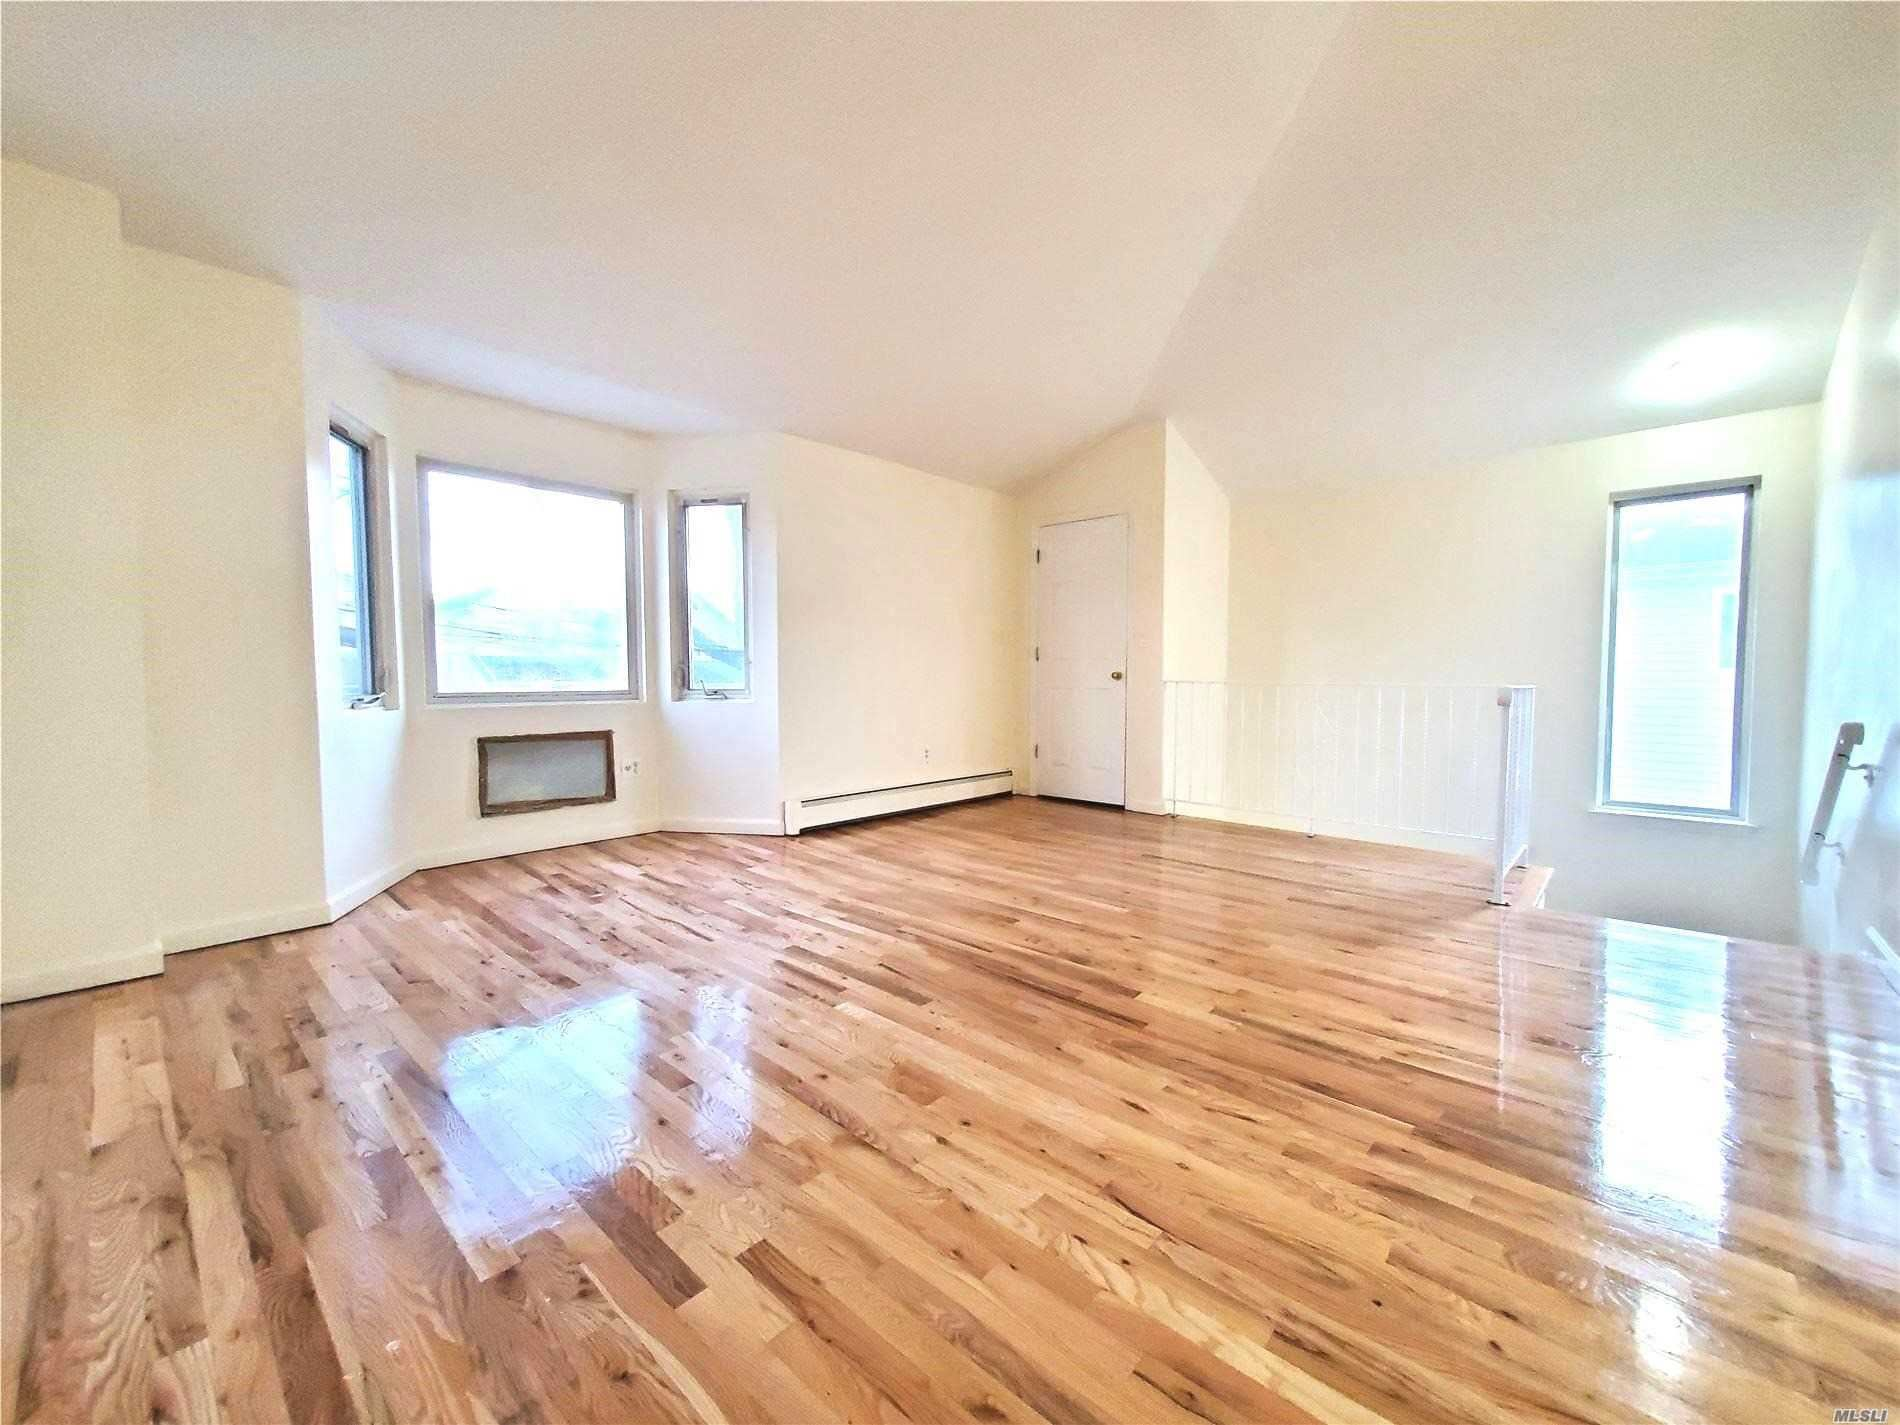 93-21 91 Avenue #2nd Fl, Woodhaven, NY 11421 - MLS#: 3209717